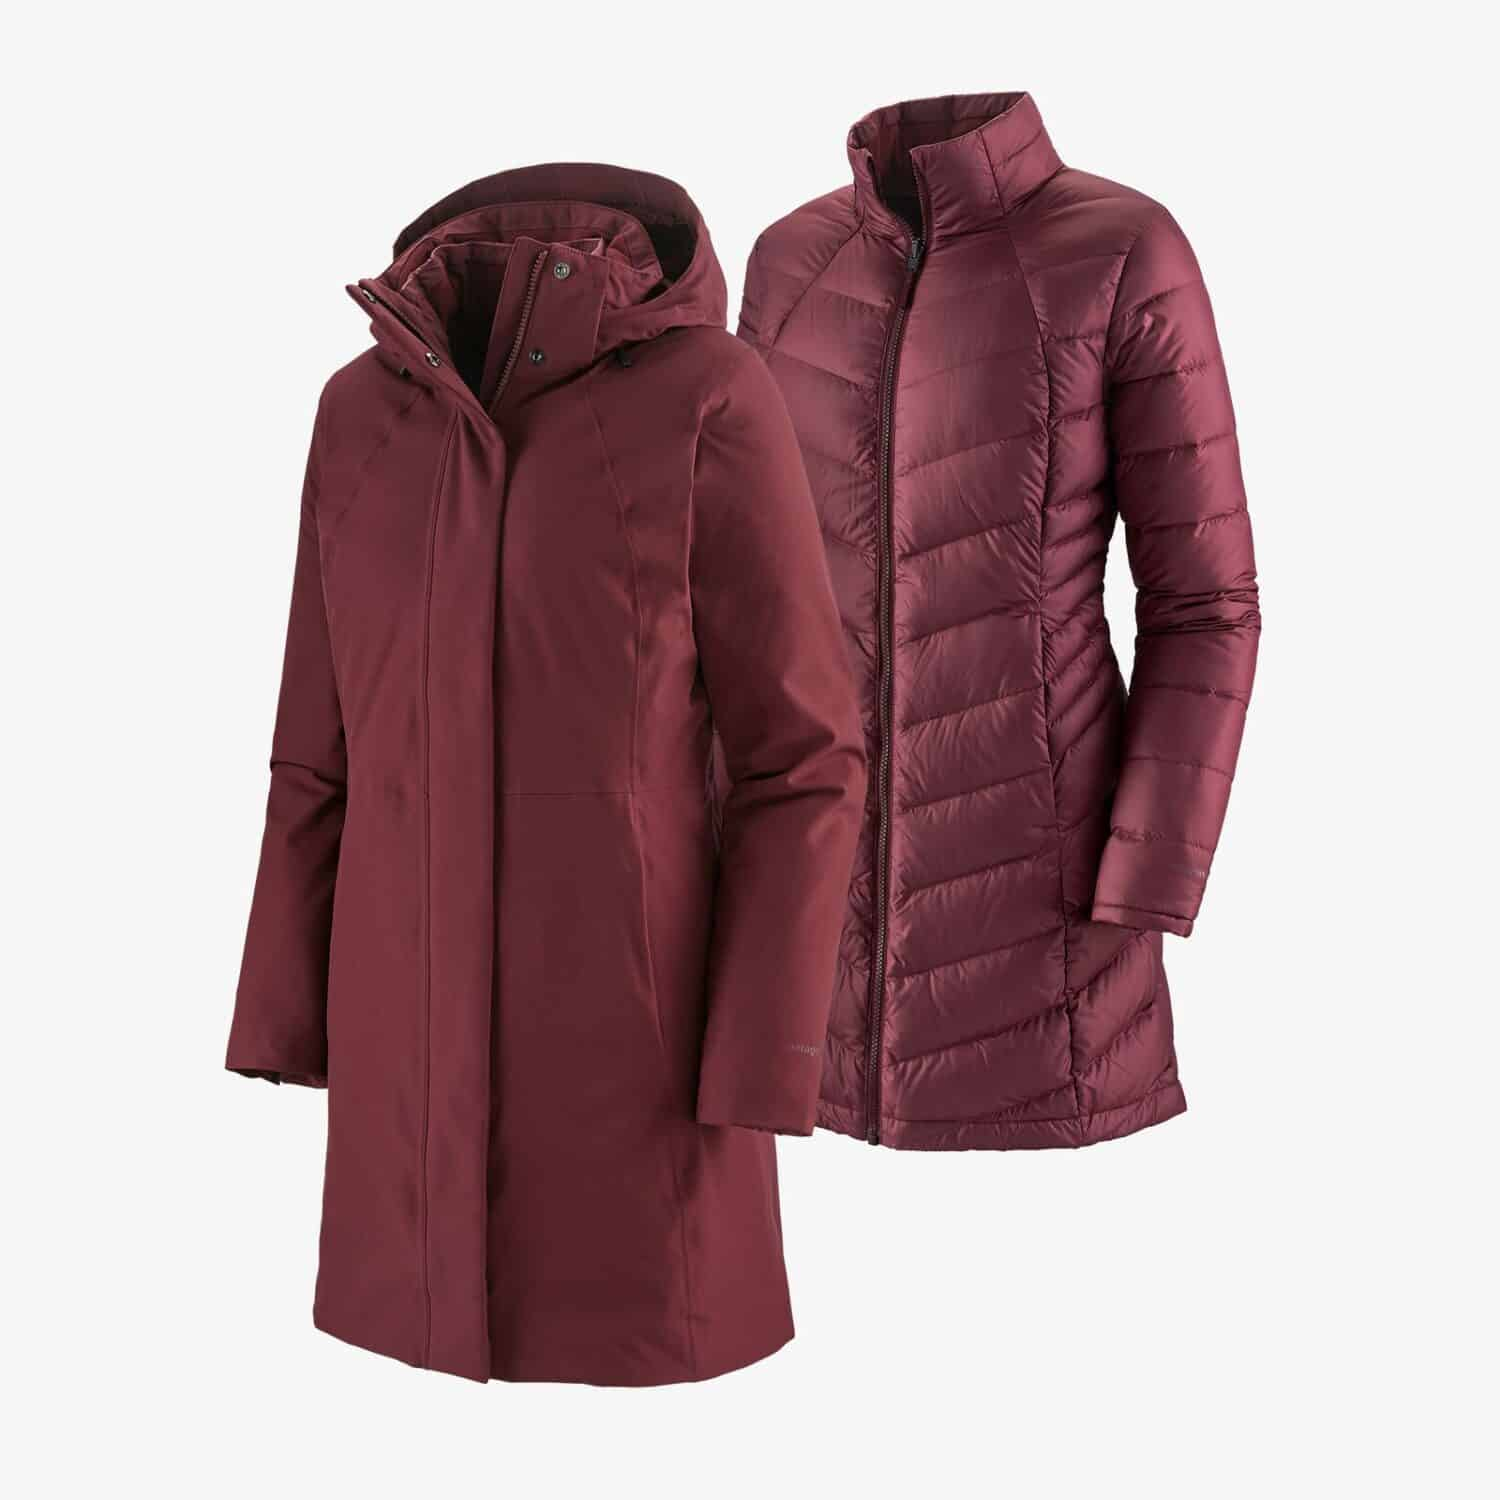 Patagonia womens Tres 3-in-1 parka